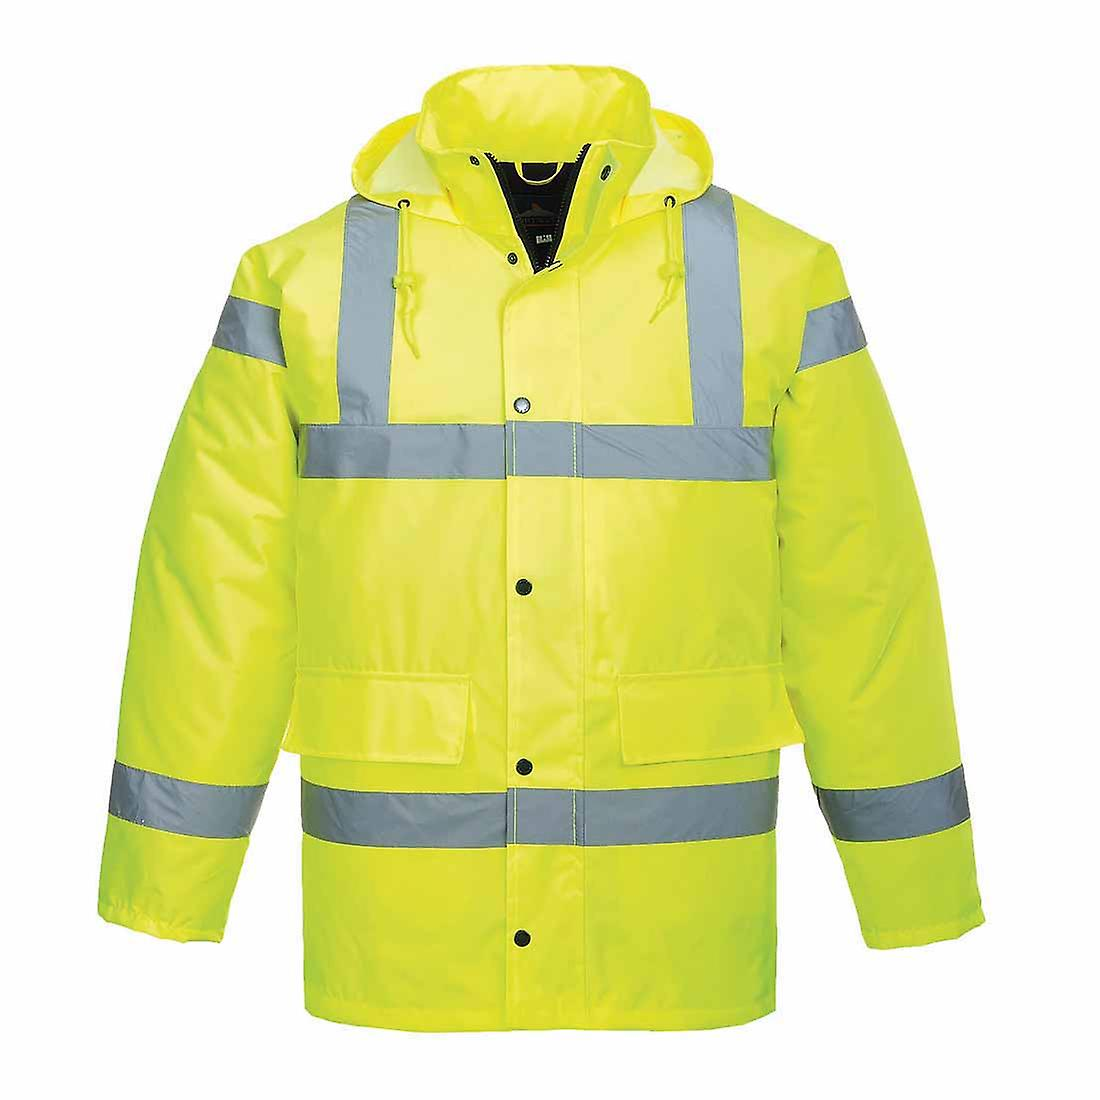 Portwest - Hi-Vis Safety respirant vêtehommests de travail veste